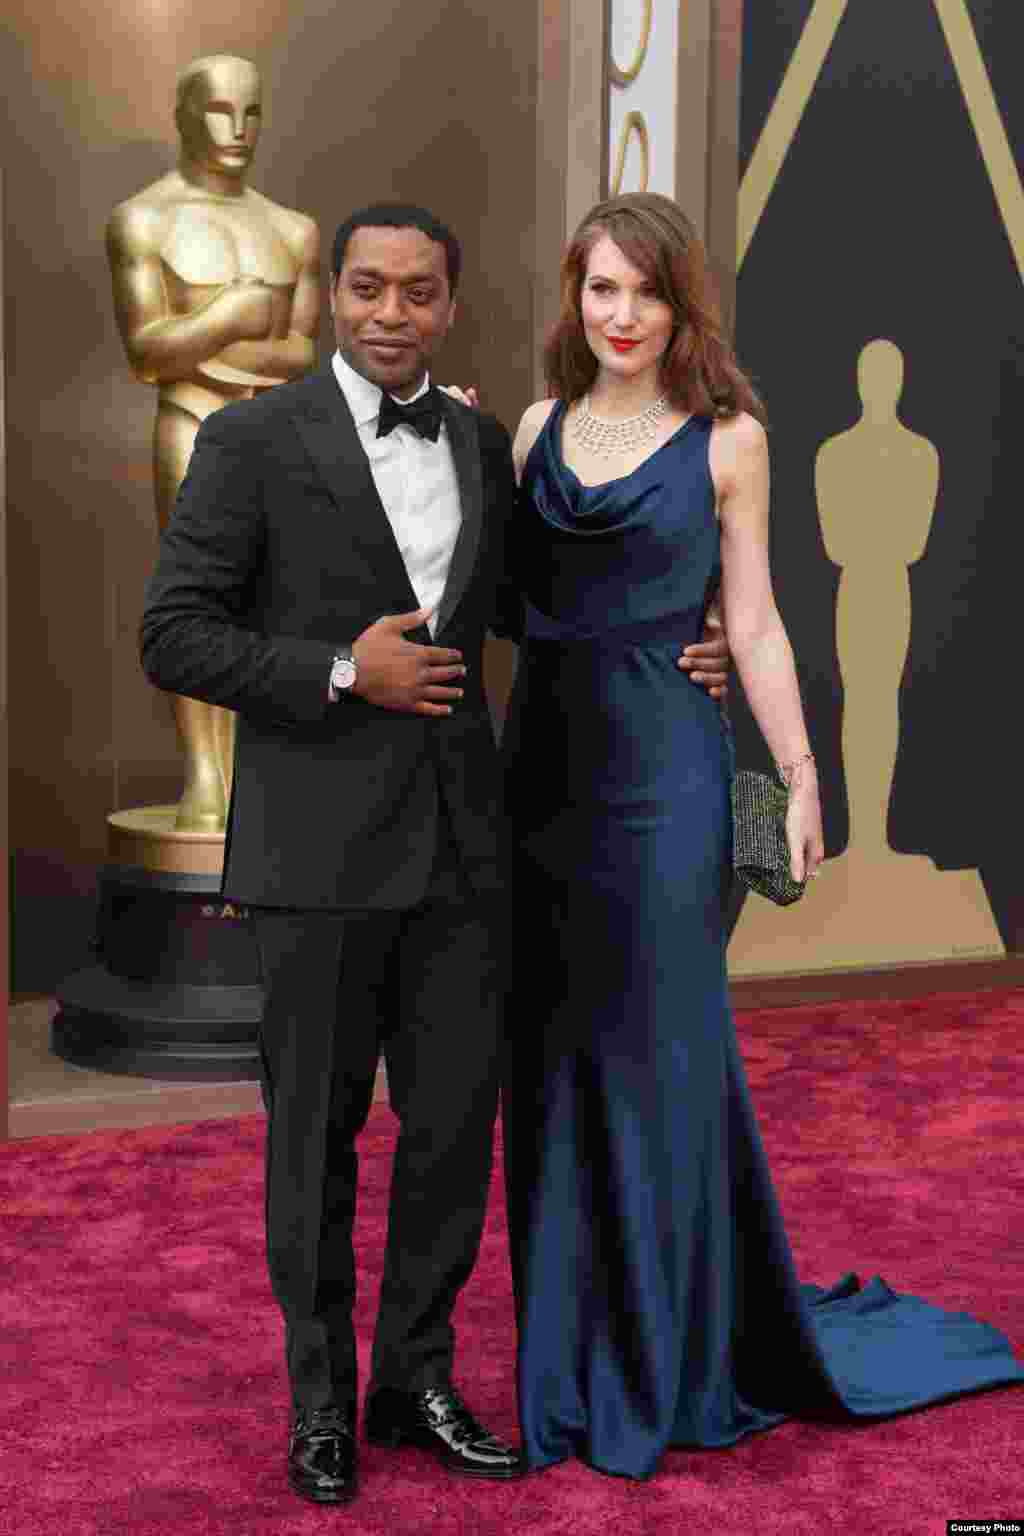 Oscar®-nominee Chiwetel Ejiofor and guest arrive for the live ABC Telecast of The 86th Oscars® on March 2, 2014 in Hollywood, CA. (Photo courtesy AMPAS)